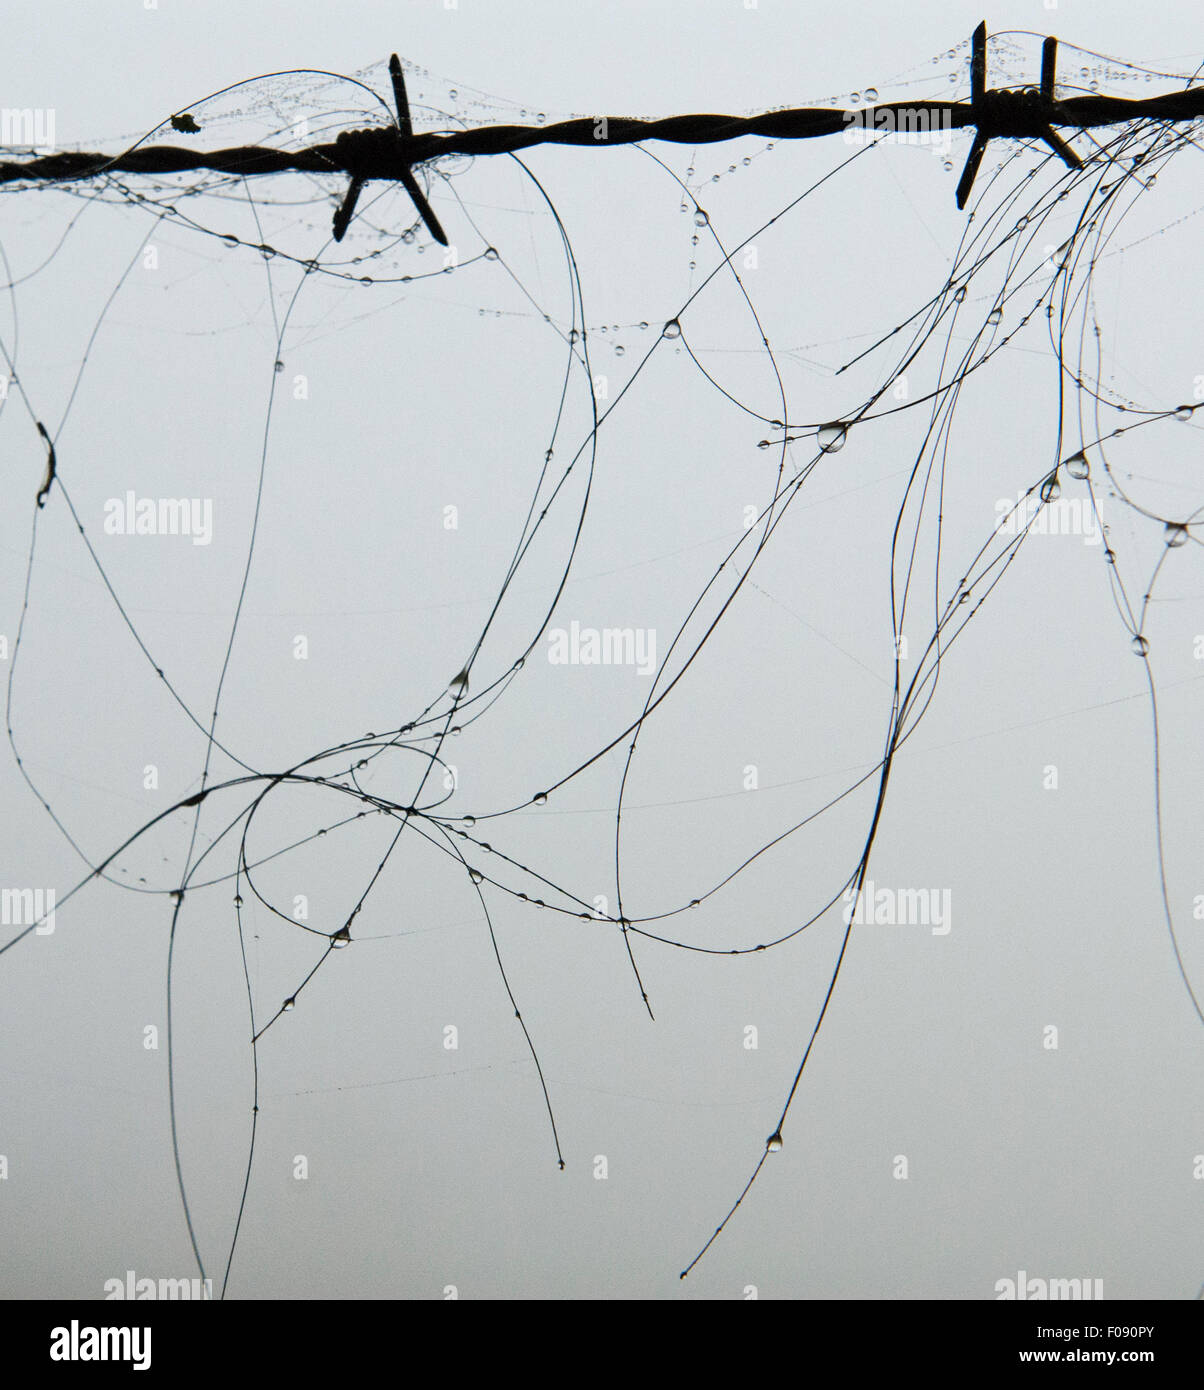 Barbed Wire Hair Stock Photos & Barbed Wire Hair Stock Images - Alamy